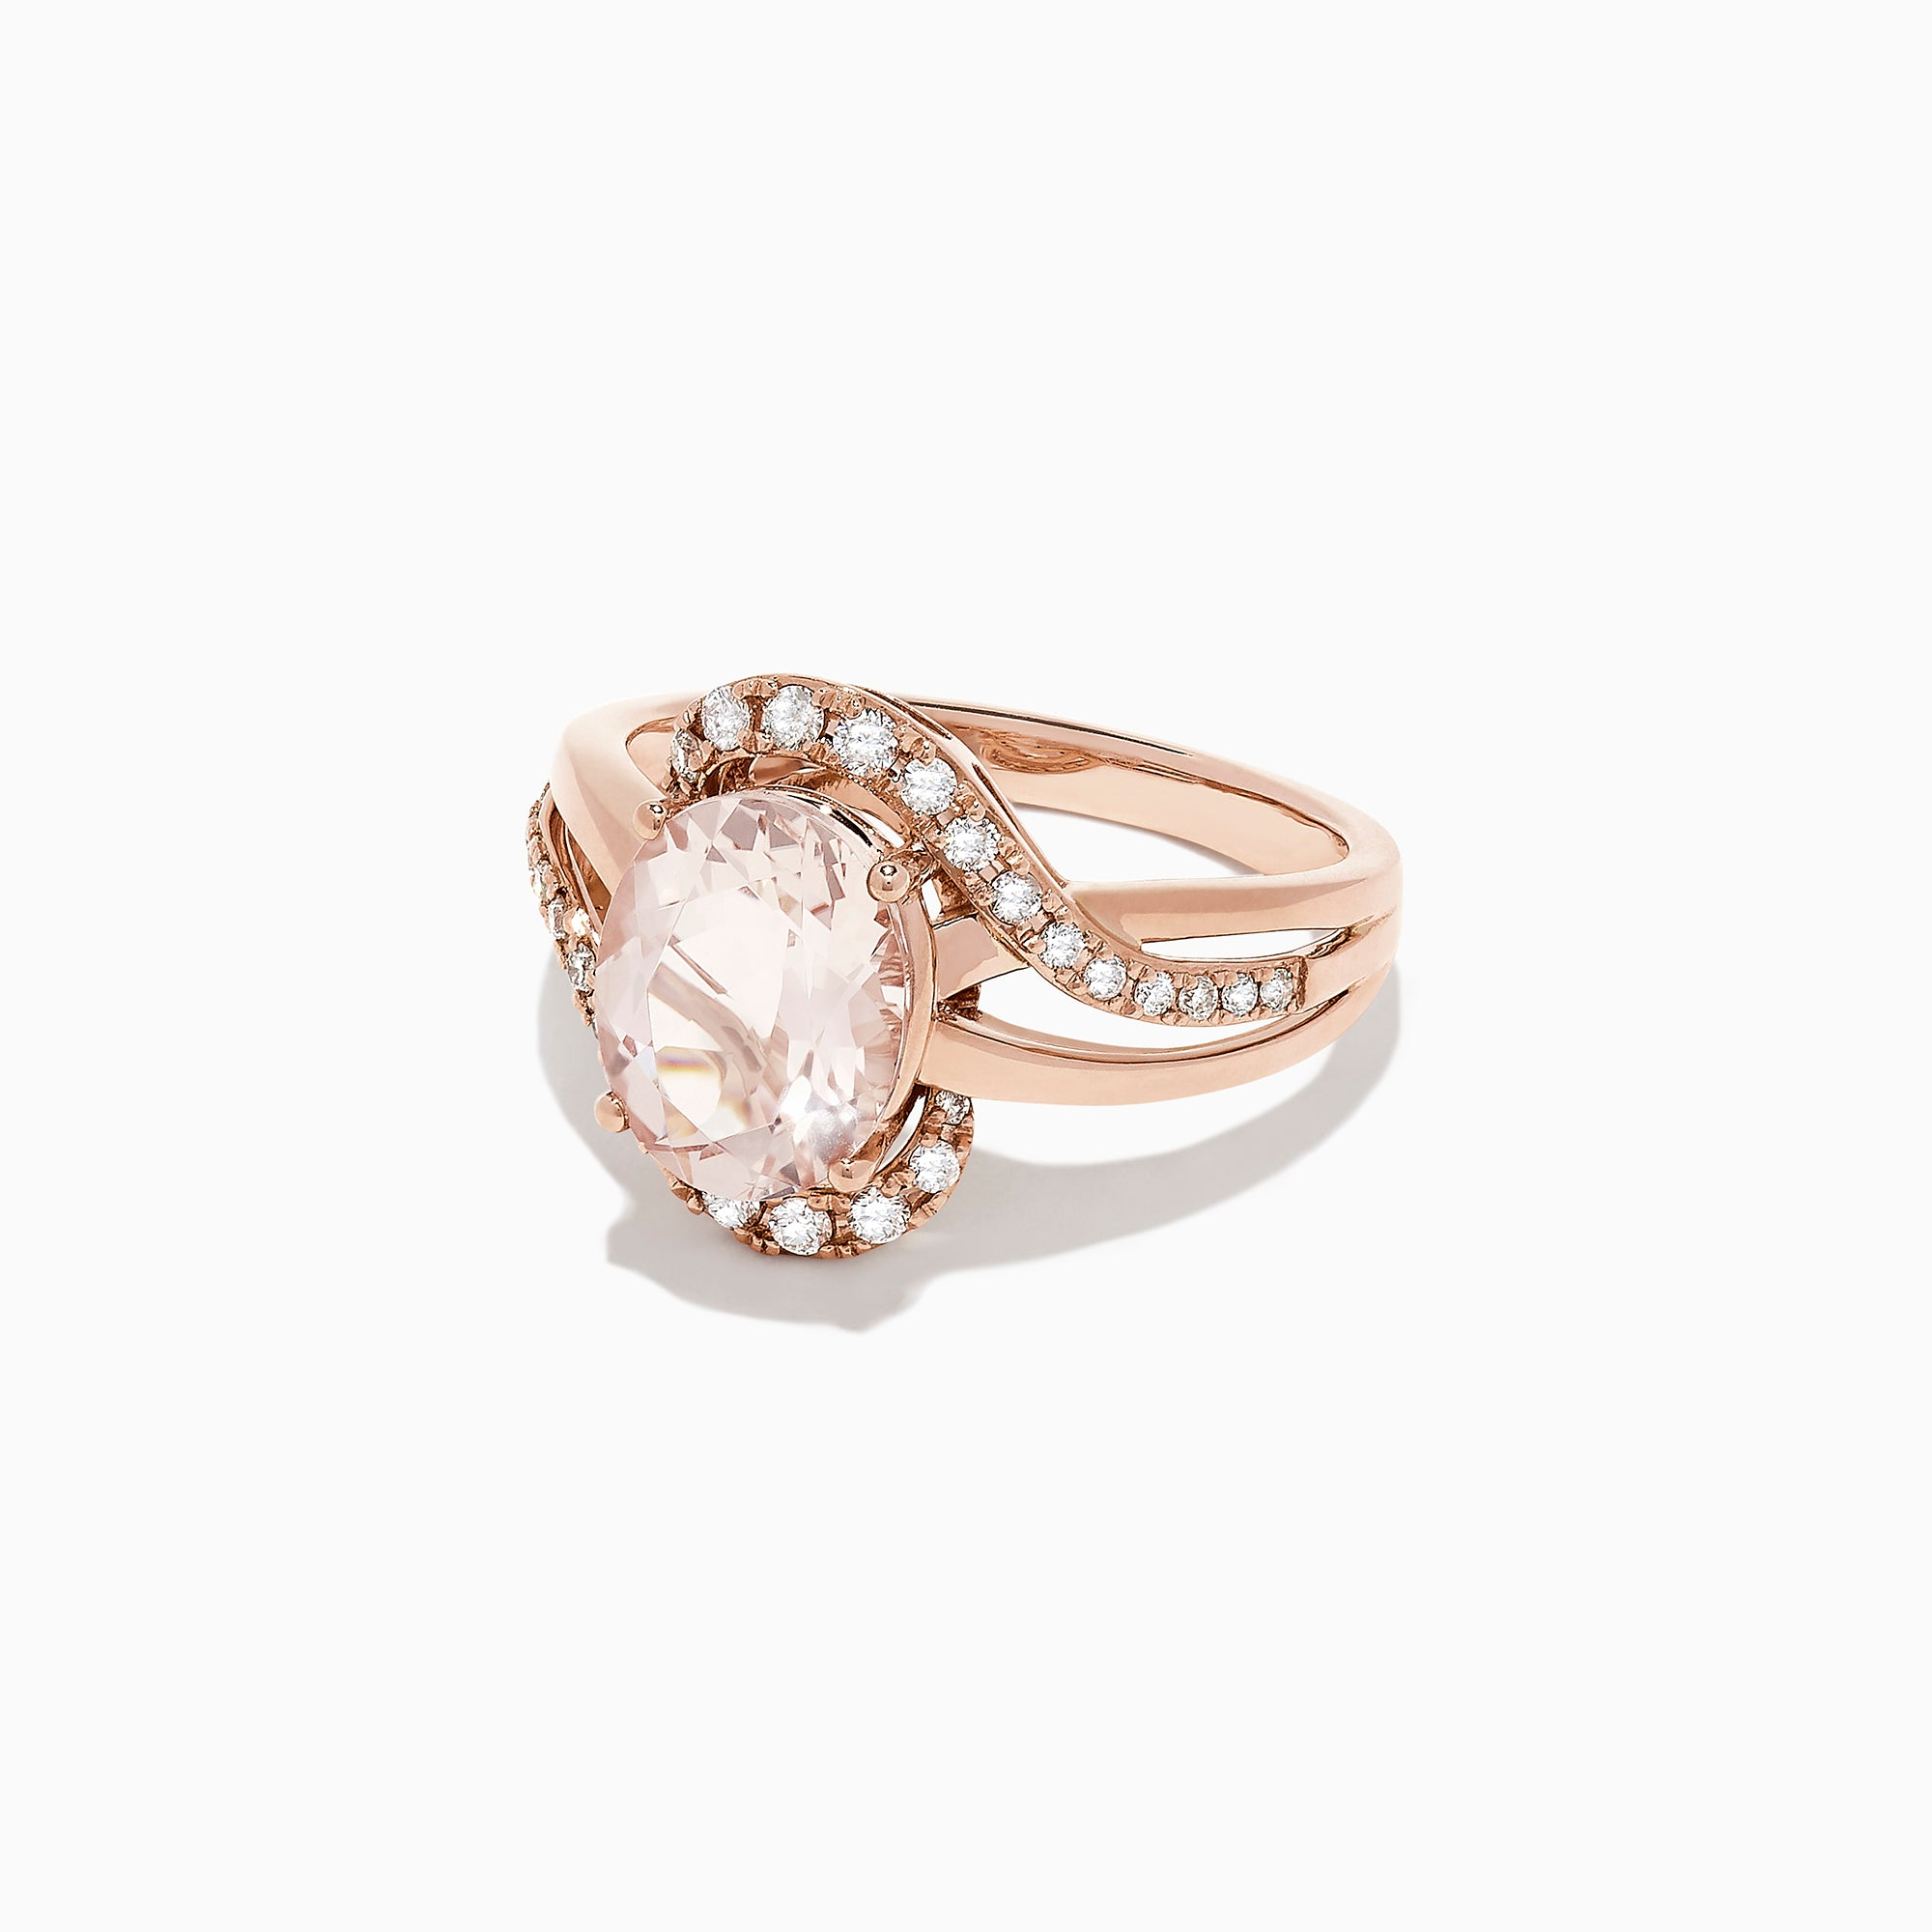 Effy 14K Rose Gold Morganite and Diamond Ring, 2.69 TCW